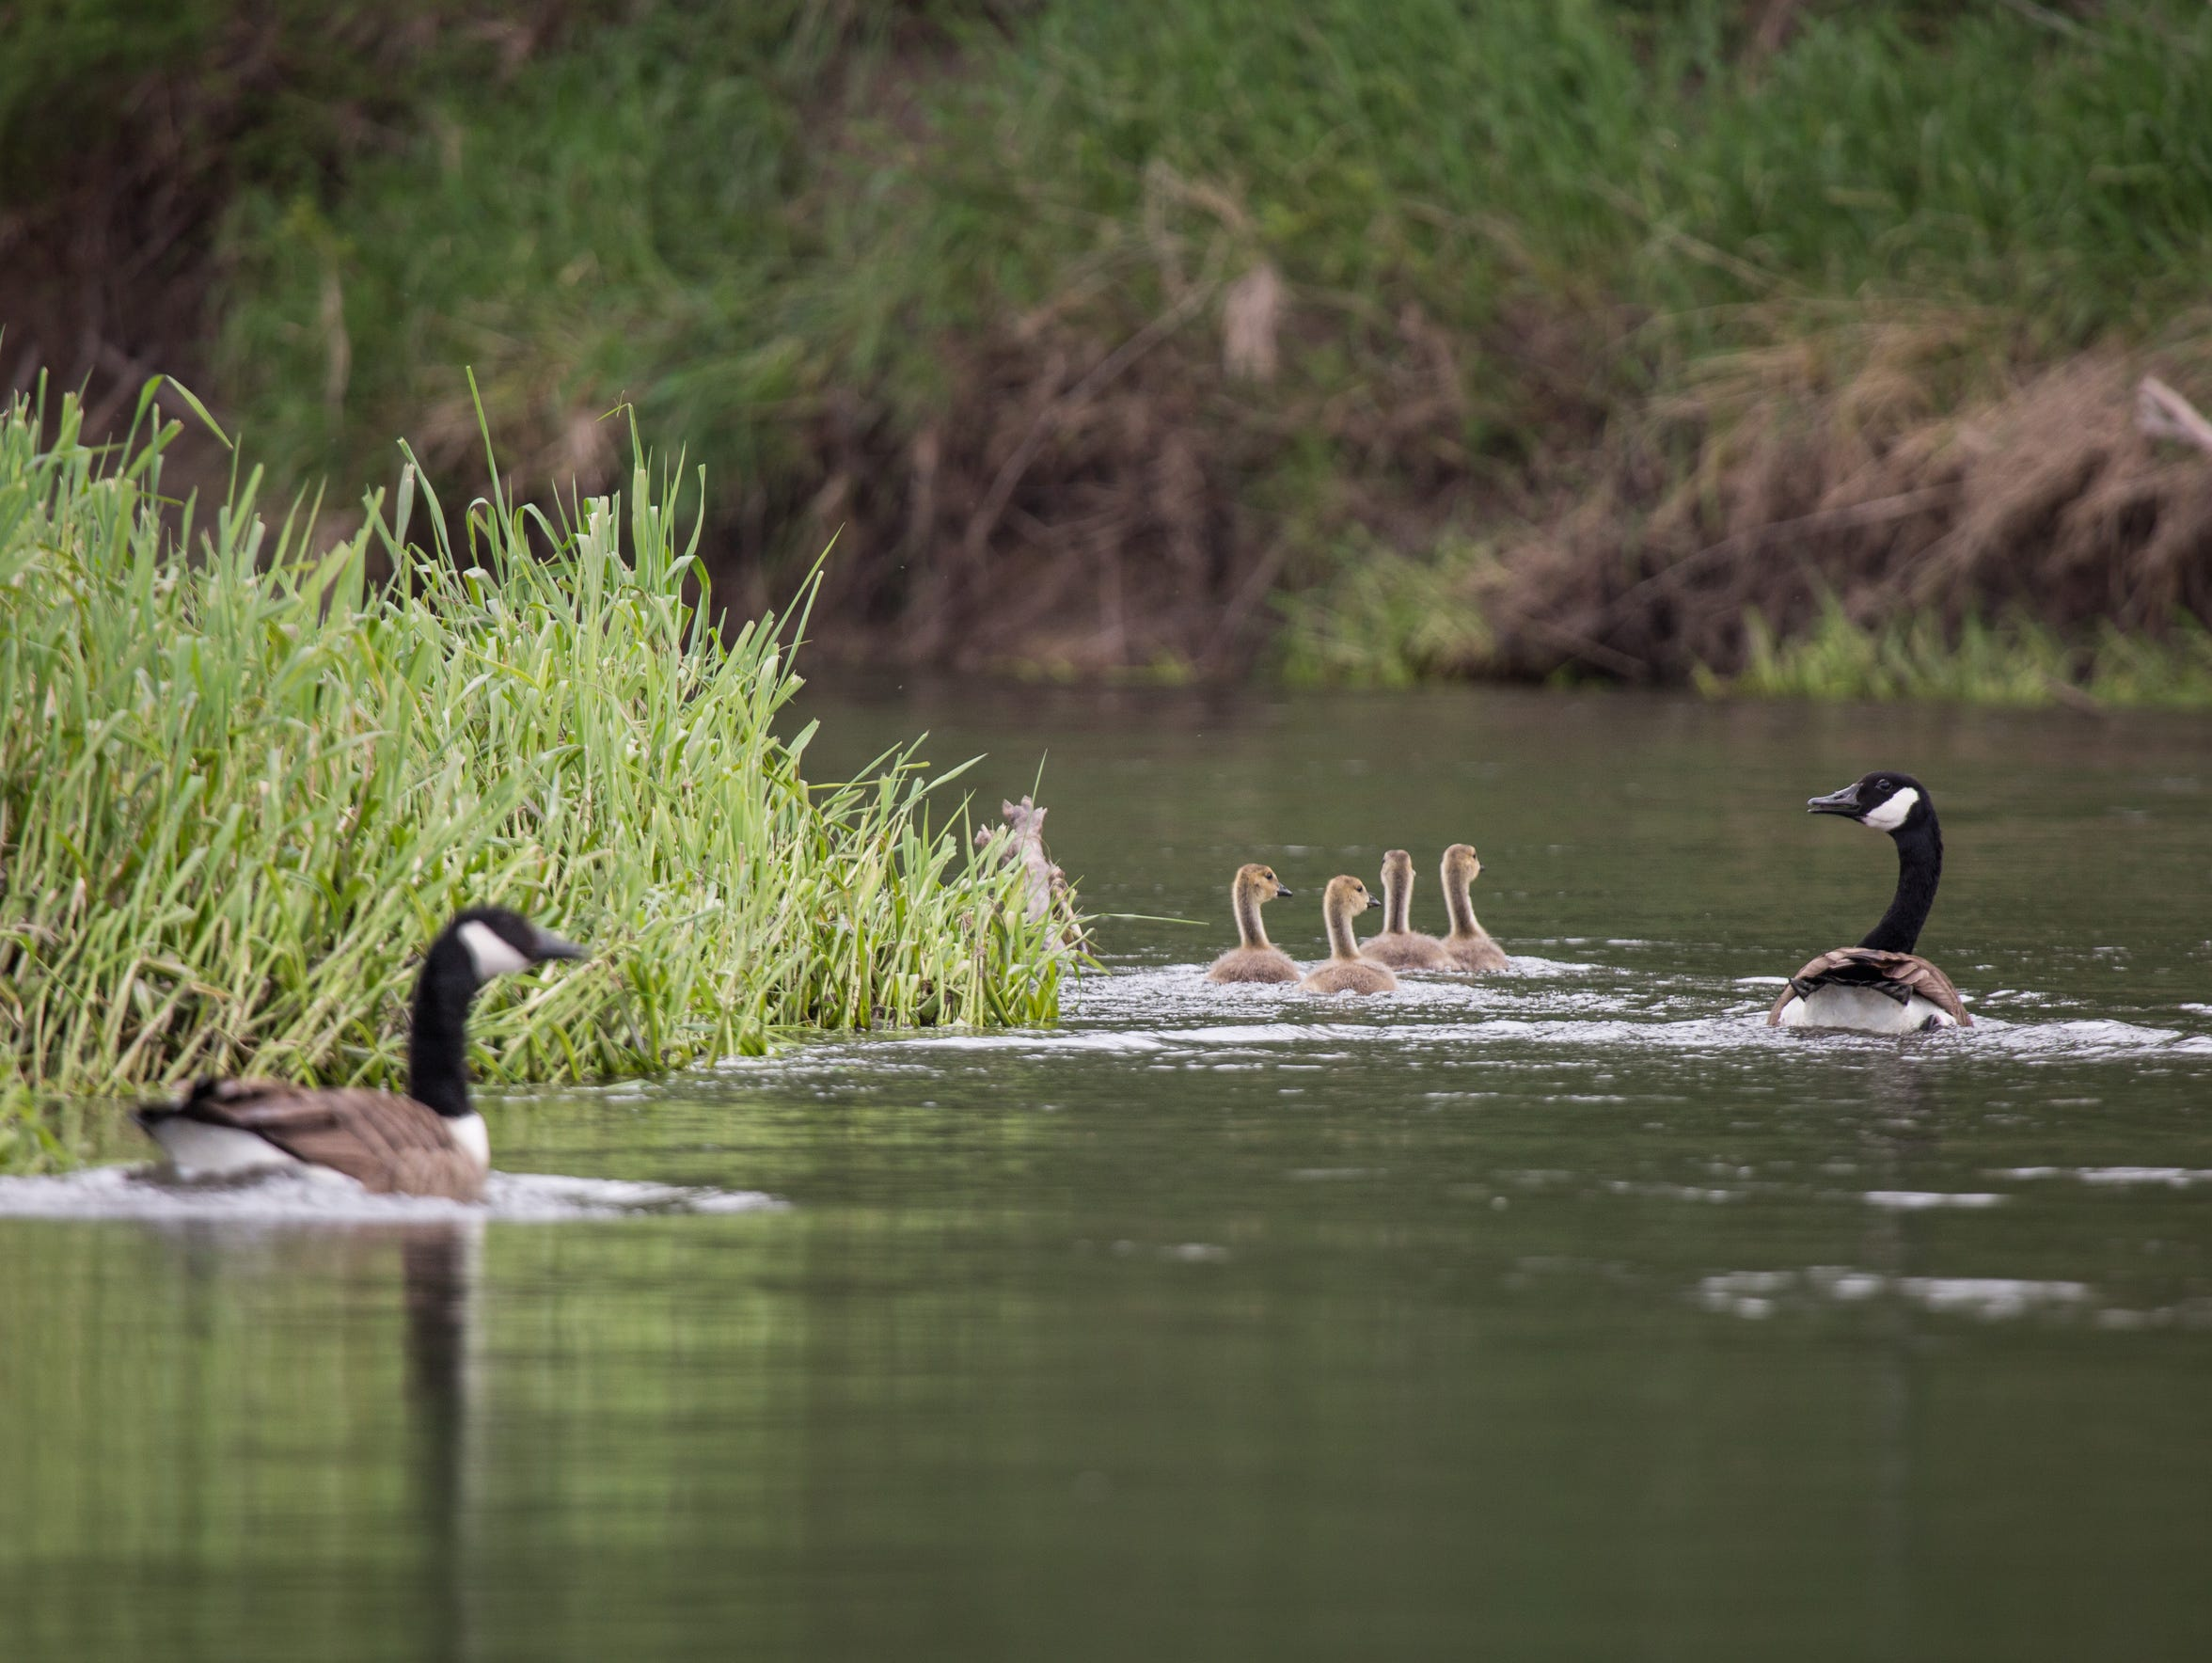 Geese and goslings on the Raccoon River in Sac County